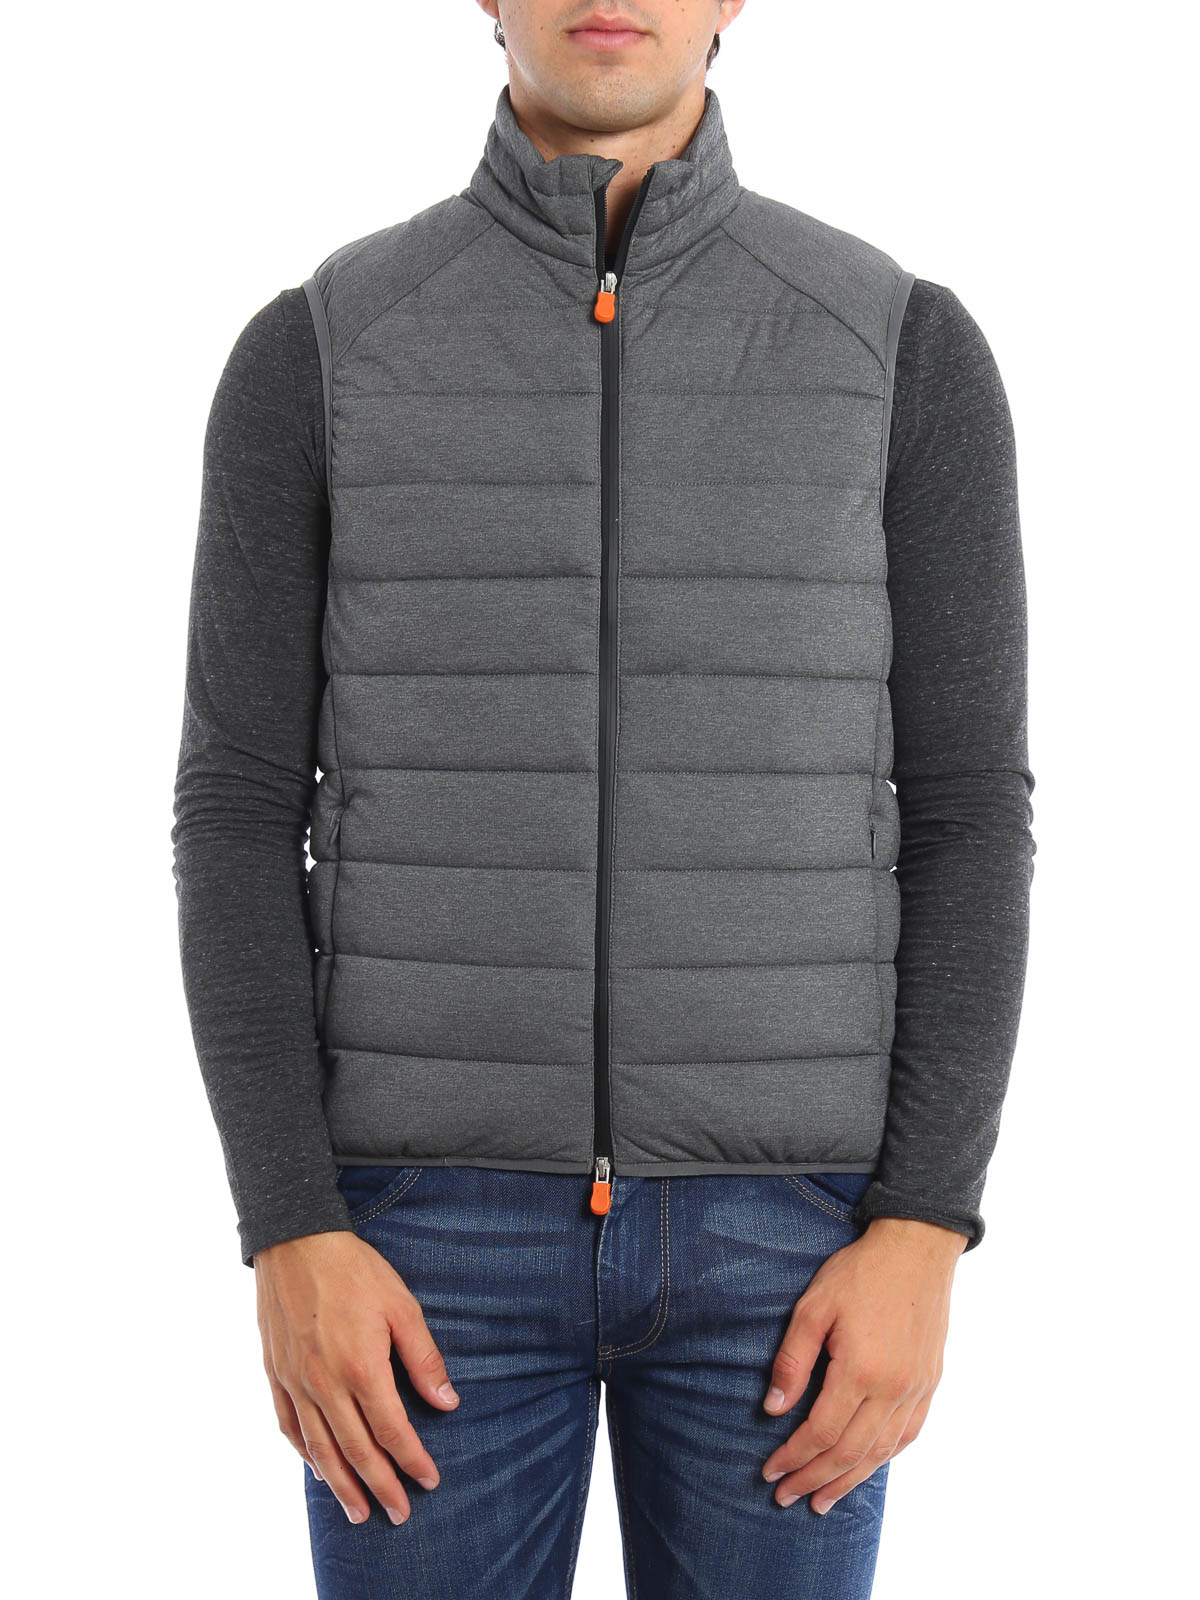 Quilted and padded vest by Save the Duck